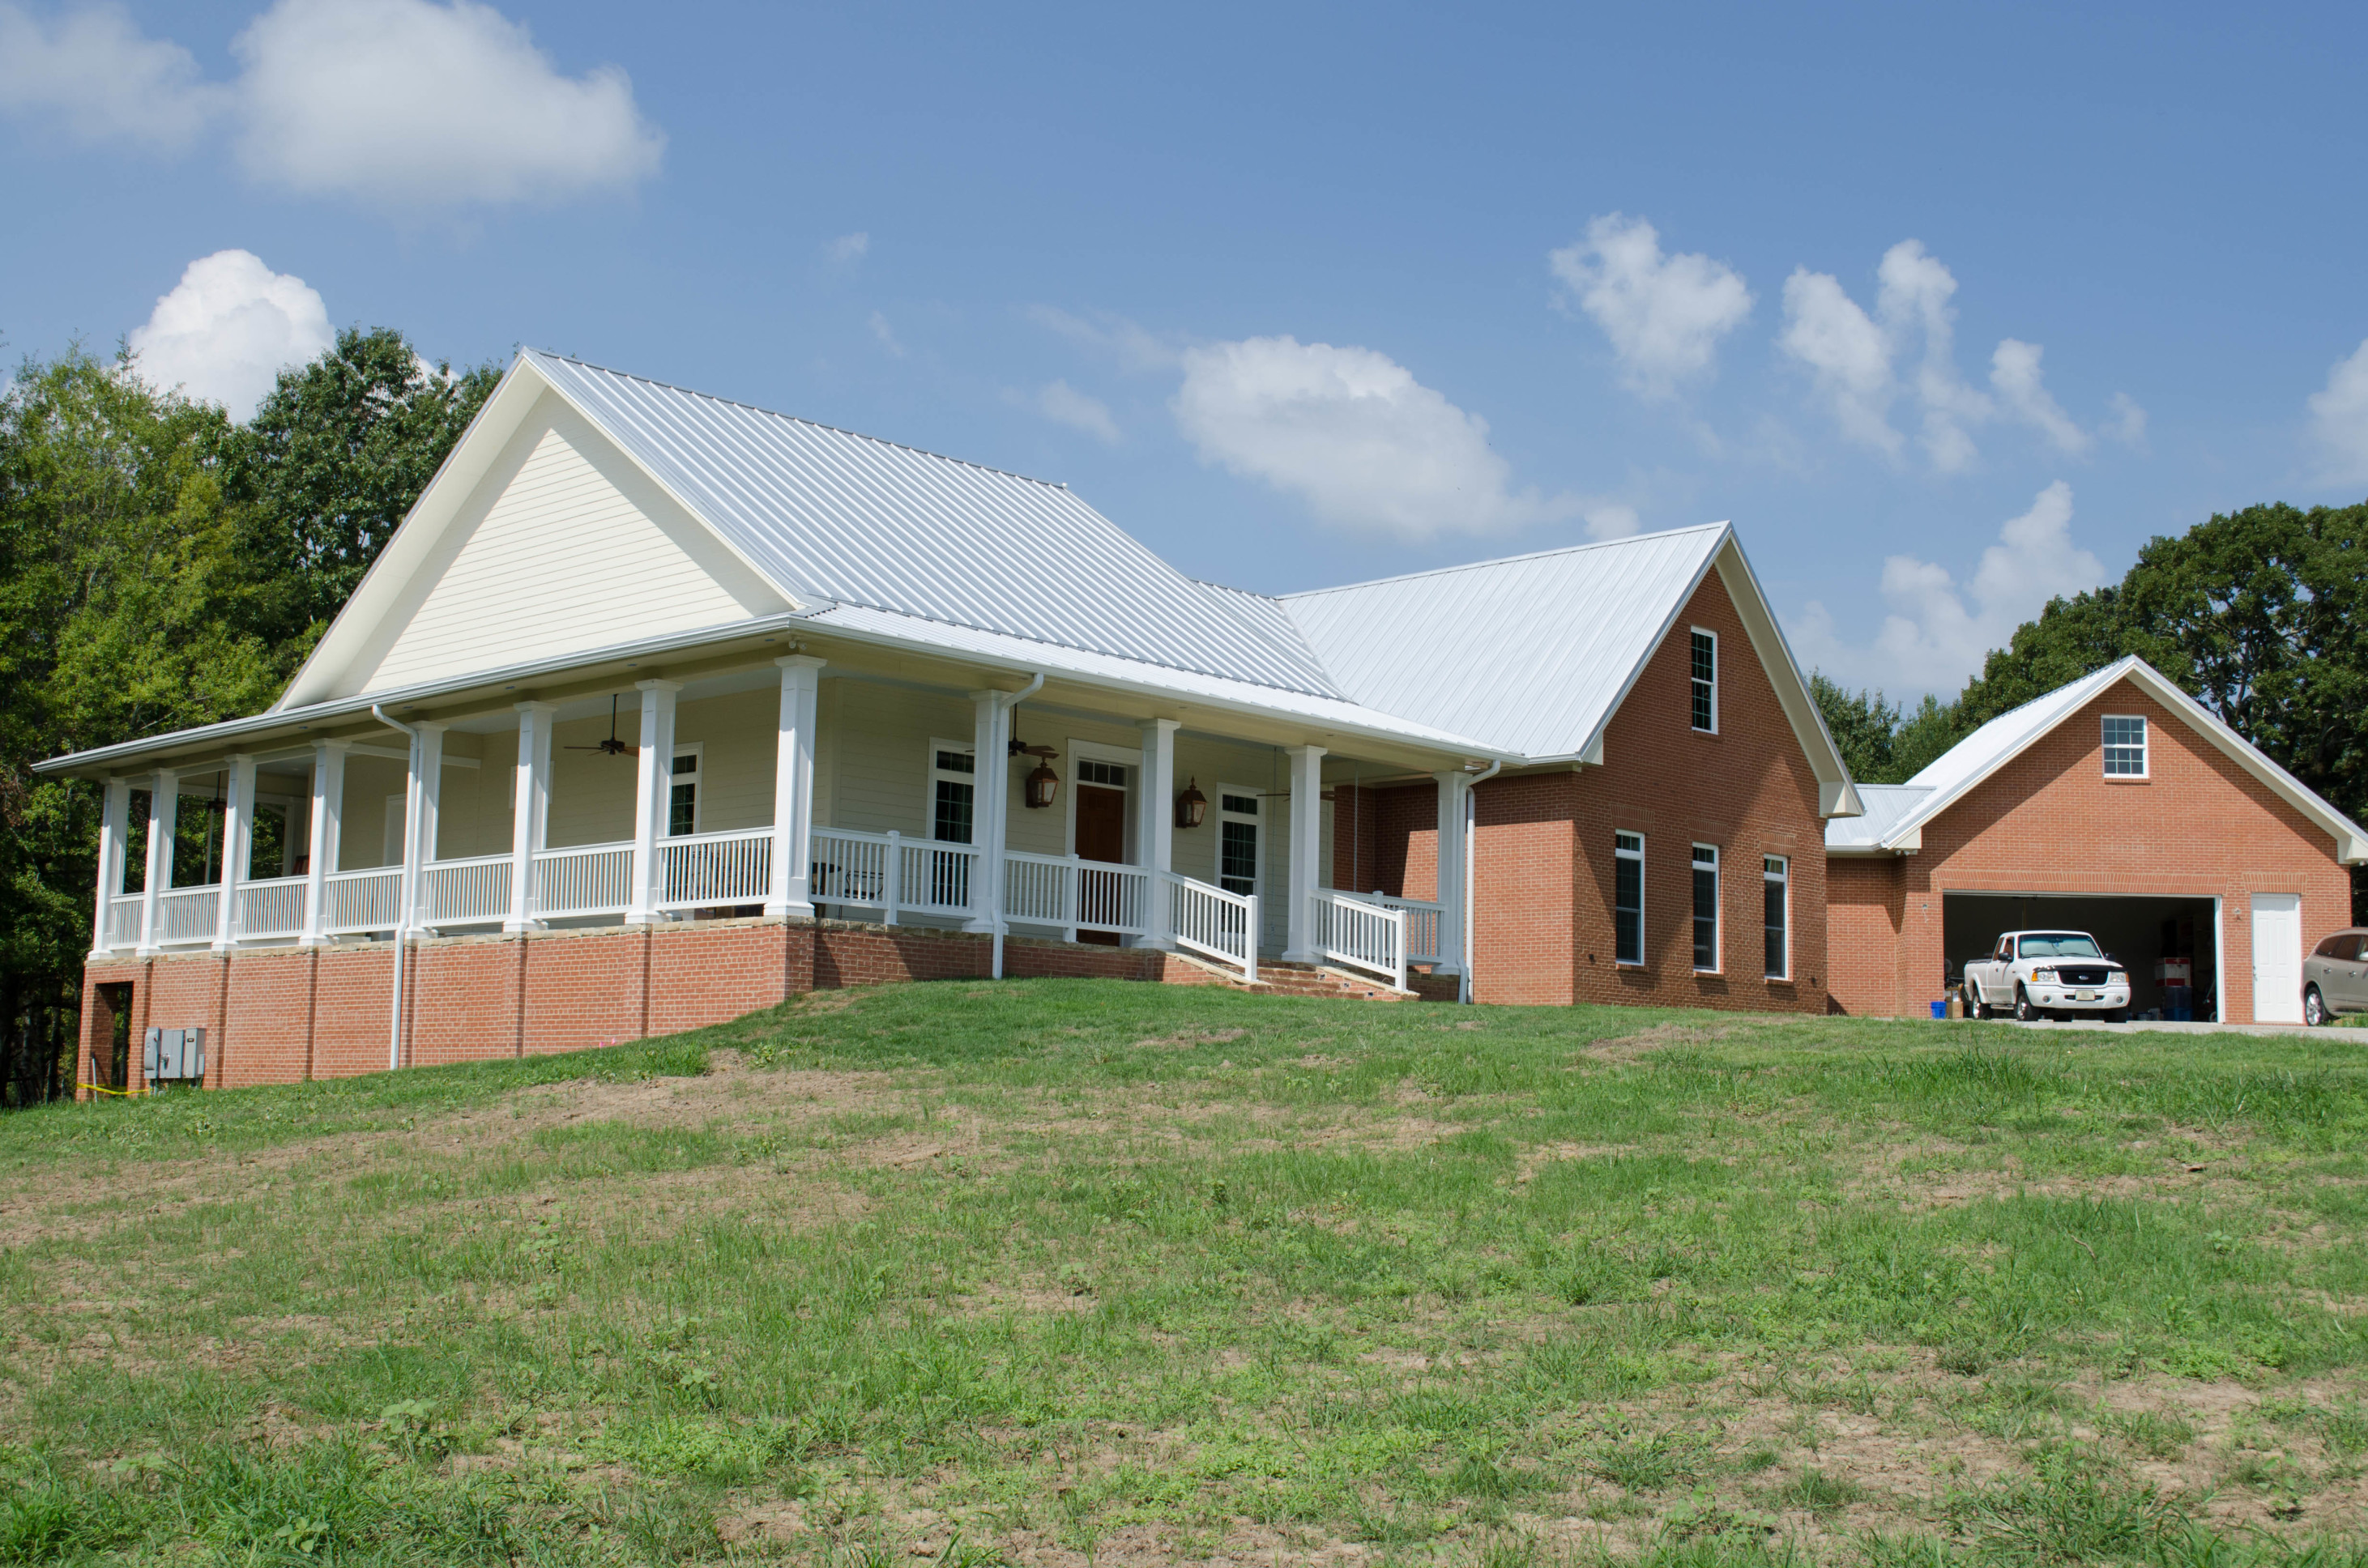 First icf home in yazoo county mississippi built using for Icf homes